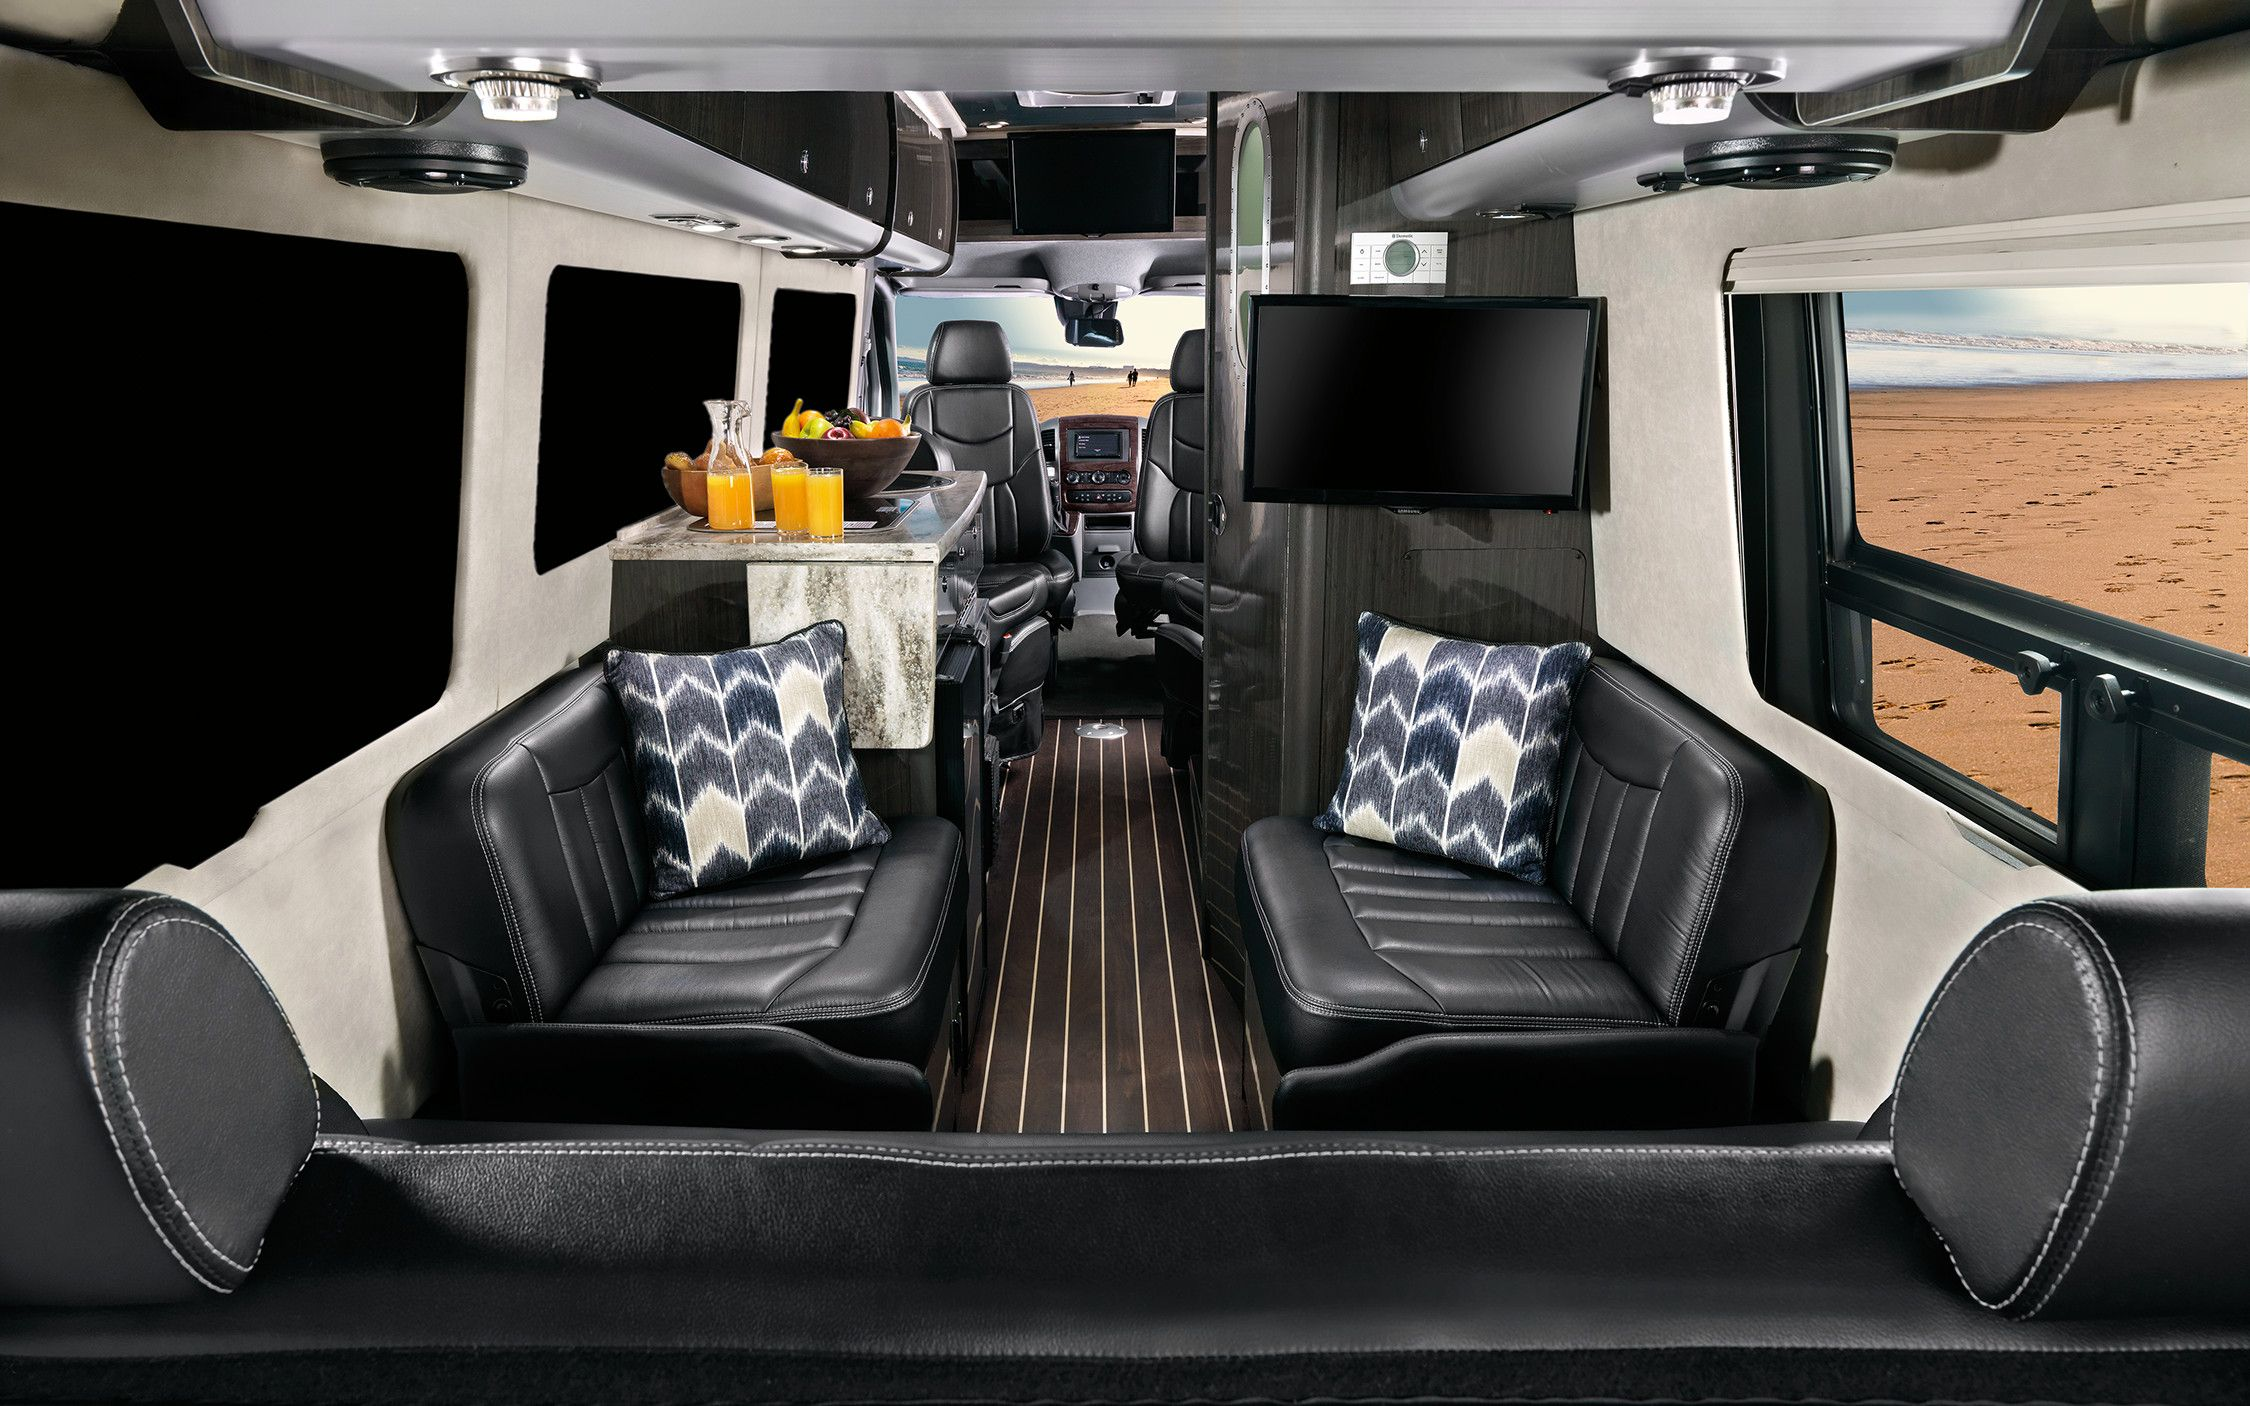 2016 Airstream Interstate Lounge Touring Coach Mercedez Benz Interior Black Ultraleather